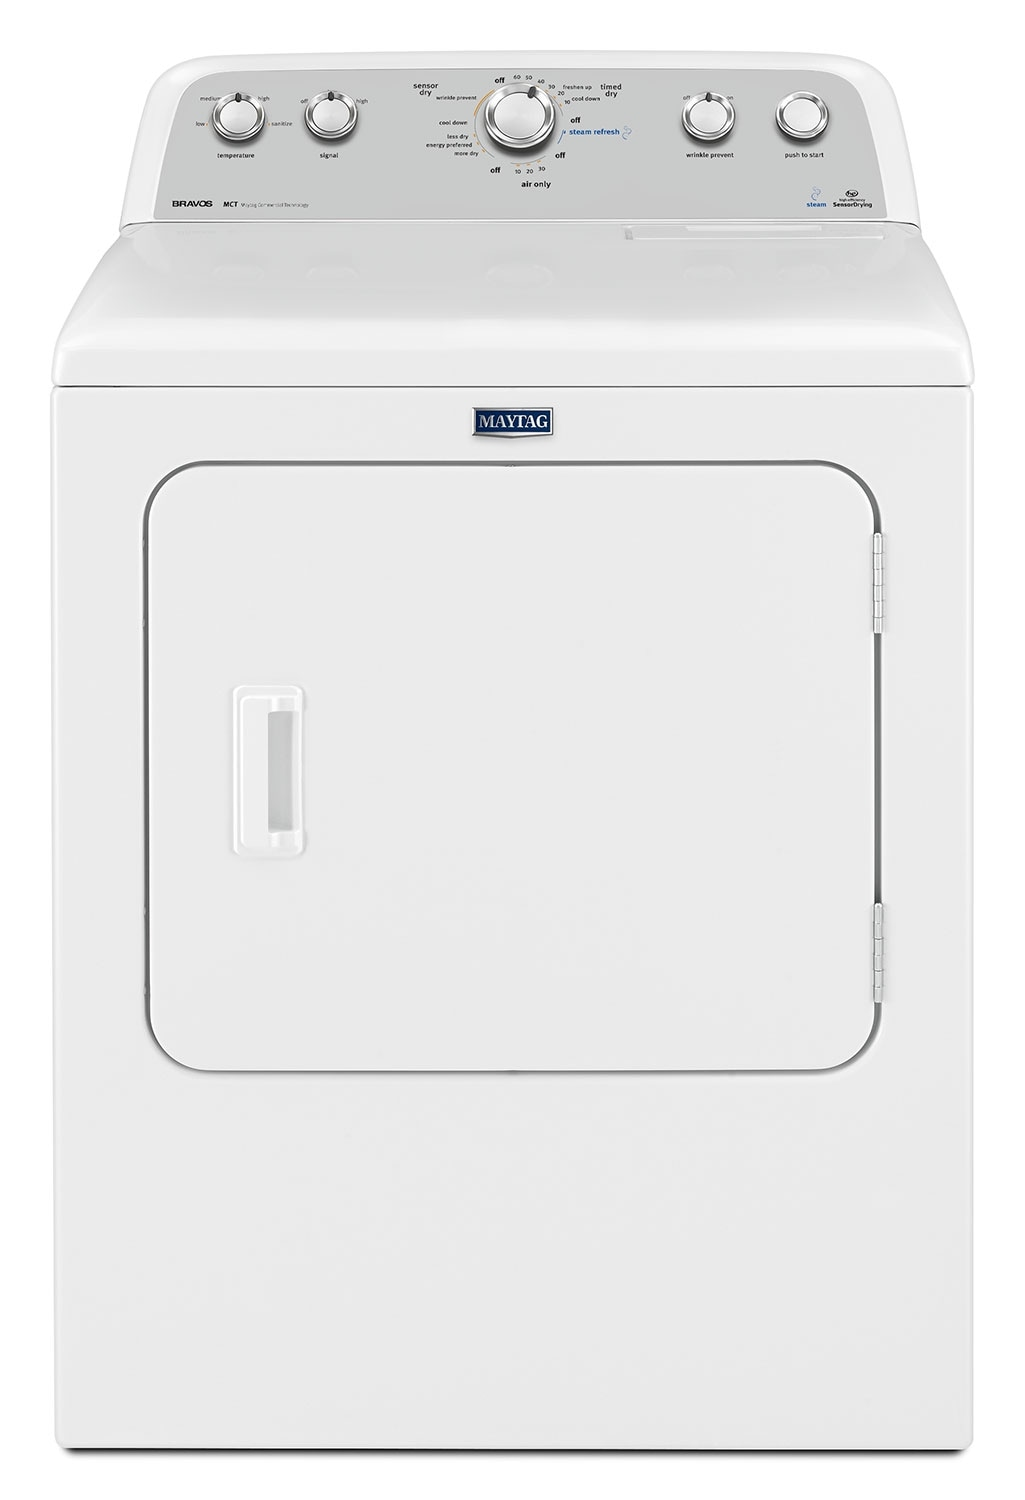 Washers and Dryers - Maytag White Gas Dryer (7.0 Cu. Ft.) - MGDX6STBW